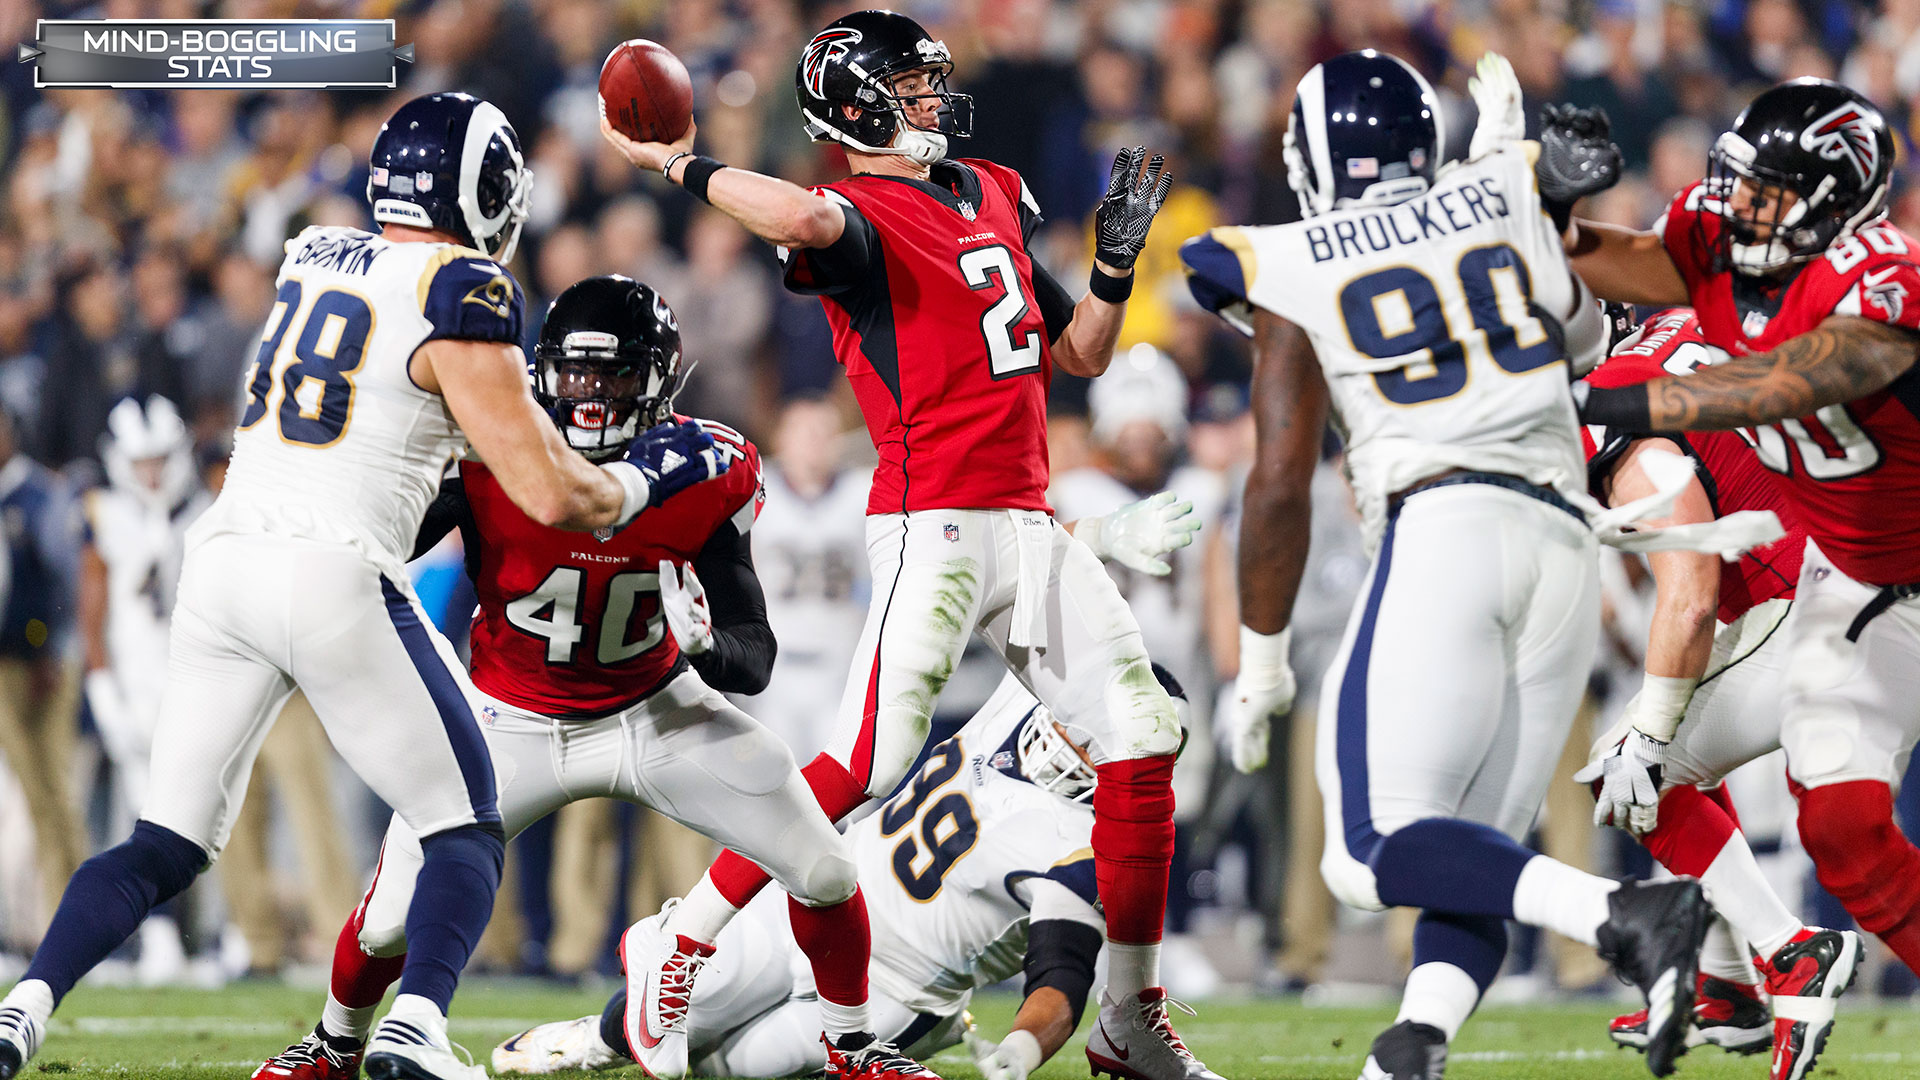 Atlanta Falcons quarterback Matt Ryan (2) throws the football during an NFL football NFC wild card playoff game against the Los Angeles Rams, Saturday, Jan. 6, 2018, in Los Angeles. The Falcons defeated the Rams, 26-13. (Ryan Kang via AP)